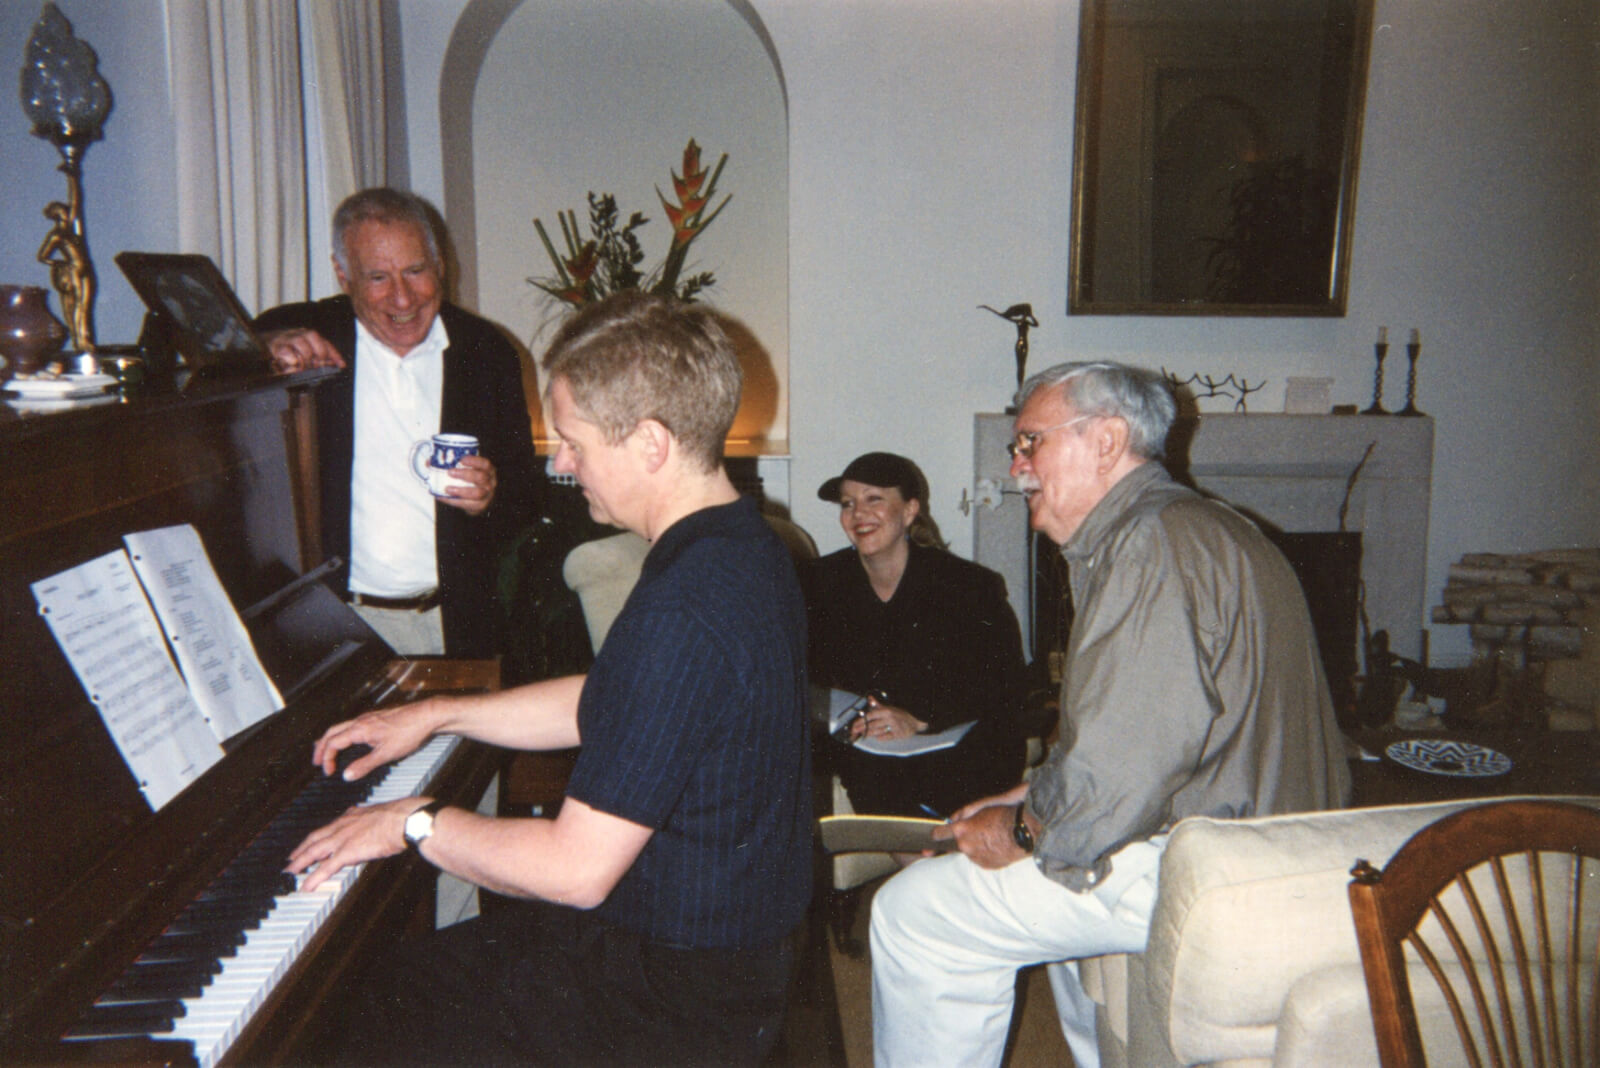 Glen Kelly at the piano, working on the show with Mel Brooks, Susan Stroman, and Thomas Meehan.